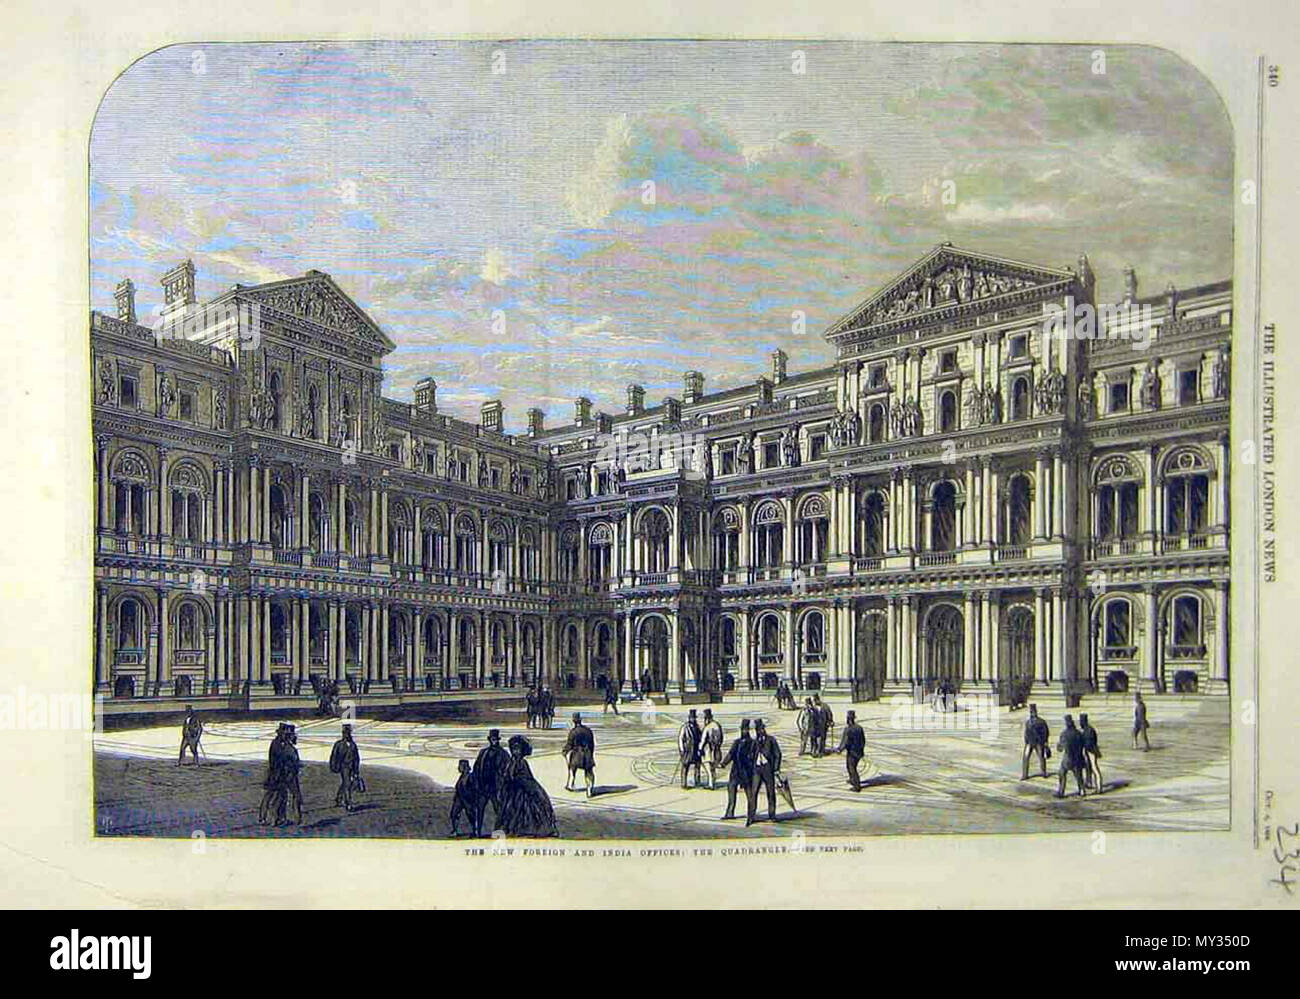 English The New Foreign And India Office The Quadrangle From The Illustrated London News 1868 Source Ebay Jan 2010 1868 Illustrated London News 521 The New Foreign And India Office The Quadrangle Stock Photo 188769181 Alamy